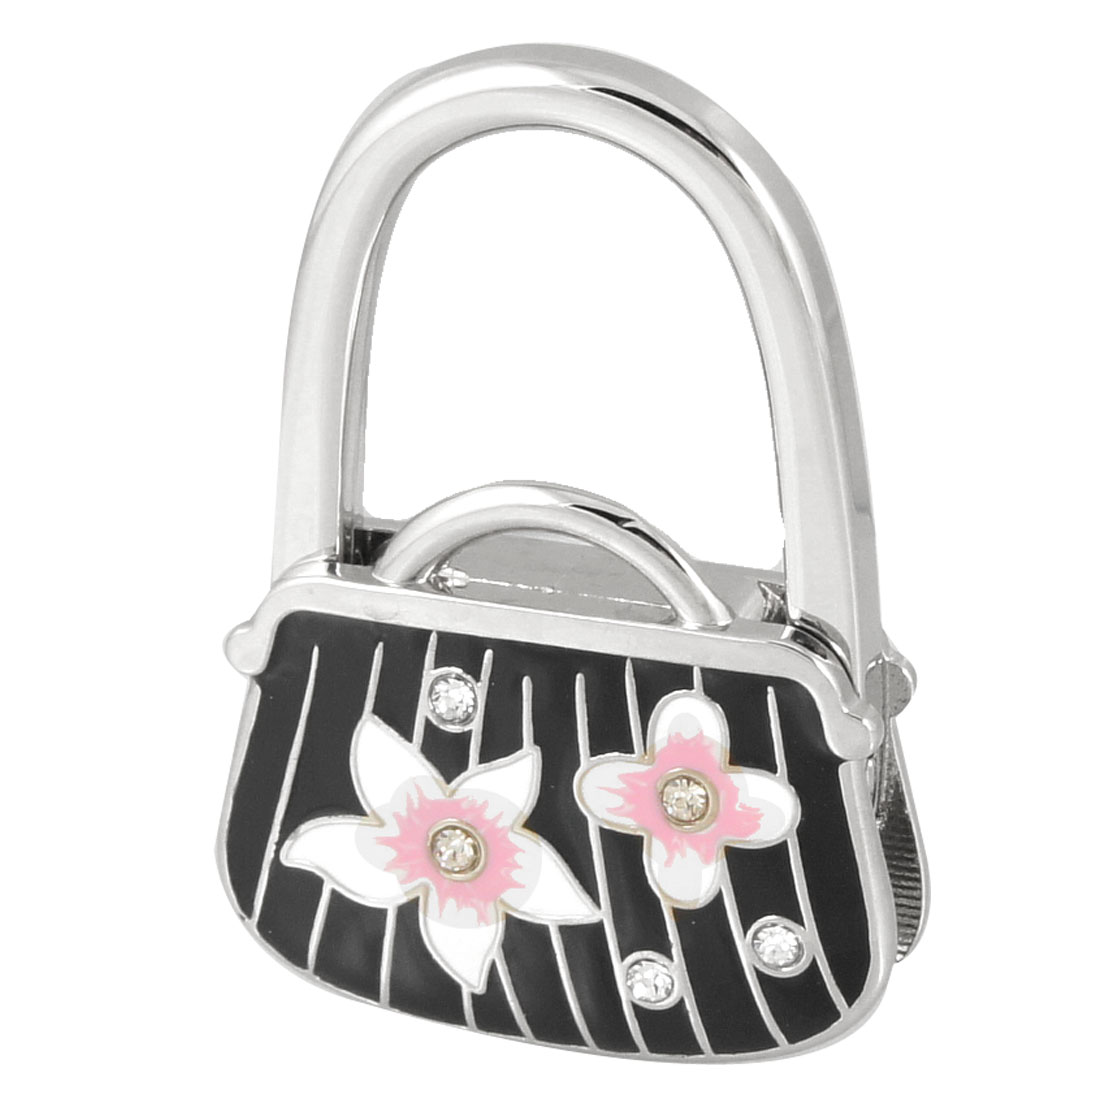 Flower Prints Black Silver Tone Bag Shaped Metal Folding Handbag Hook